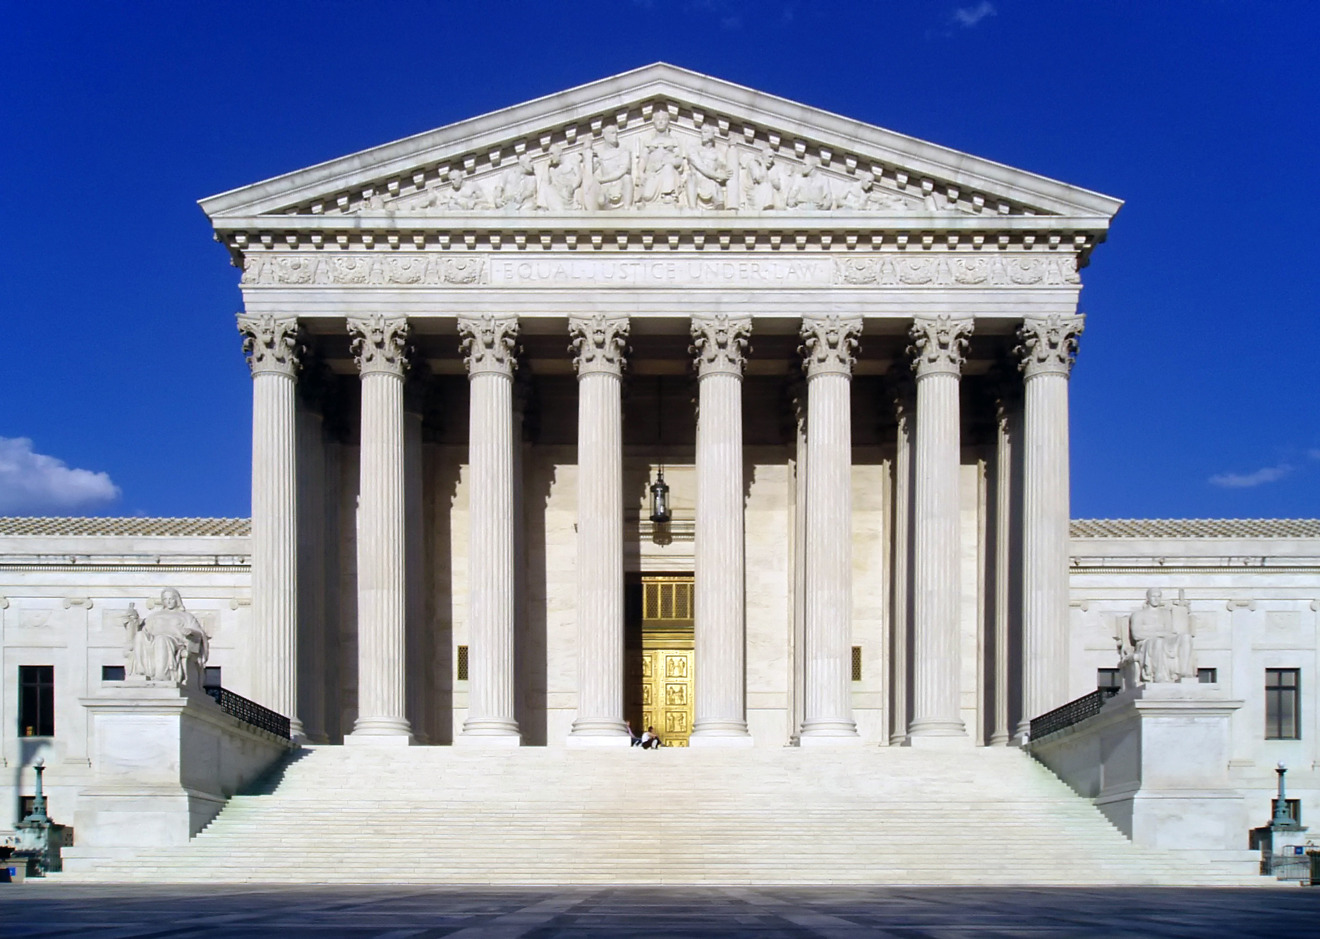 This week on AI: Apple at the Supreme Court, Australian ...